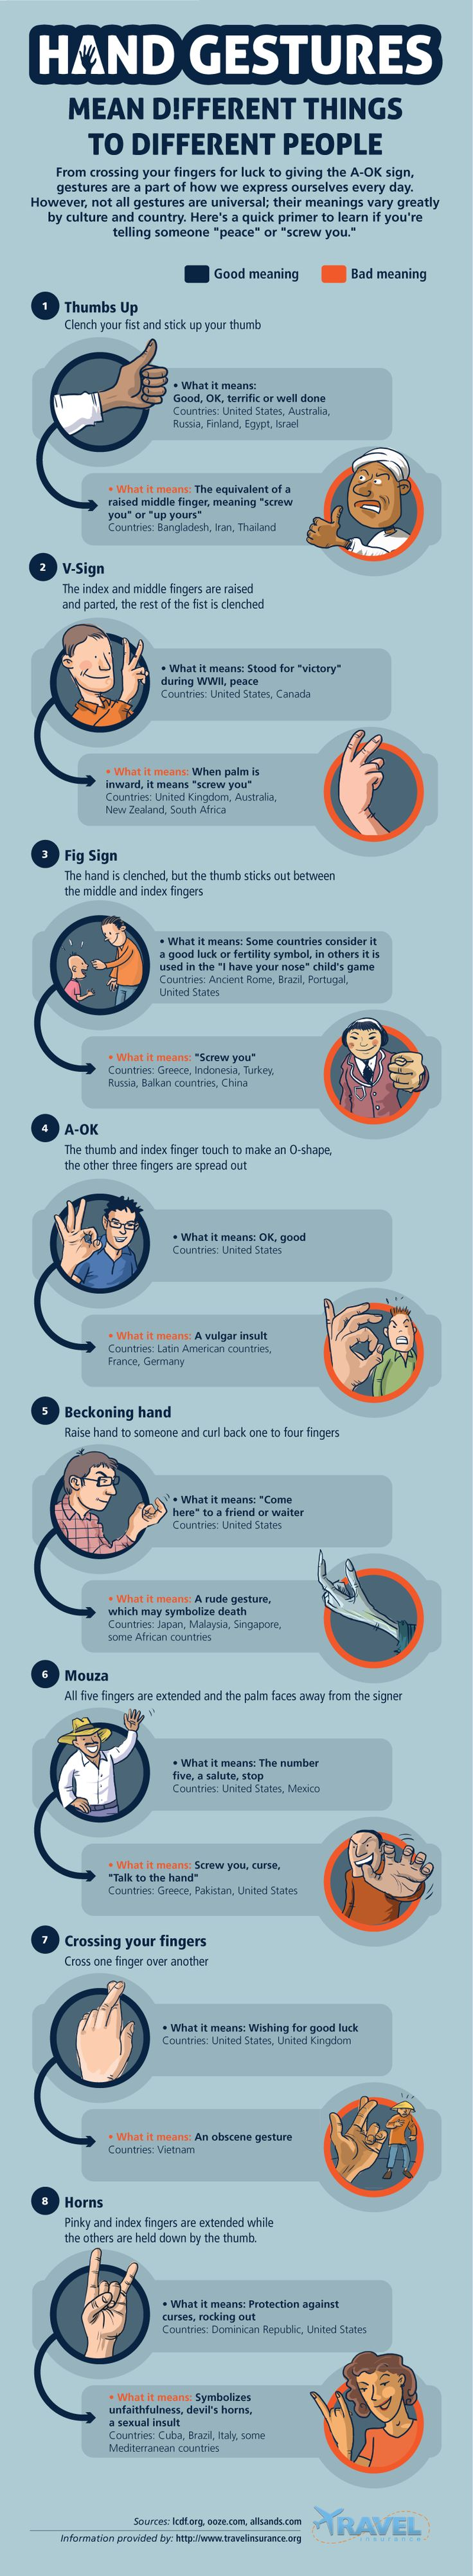 best images about esol cross cultural communication on know your hand gestures when traveling abroad infographic middot esol cross culturalcross cultural communicationwell